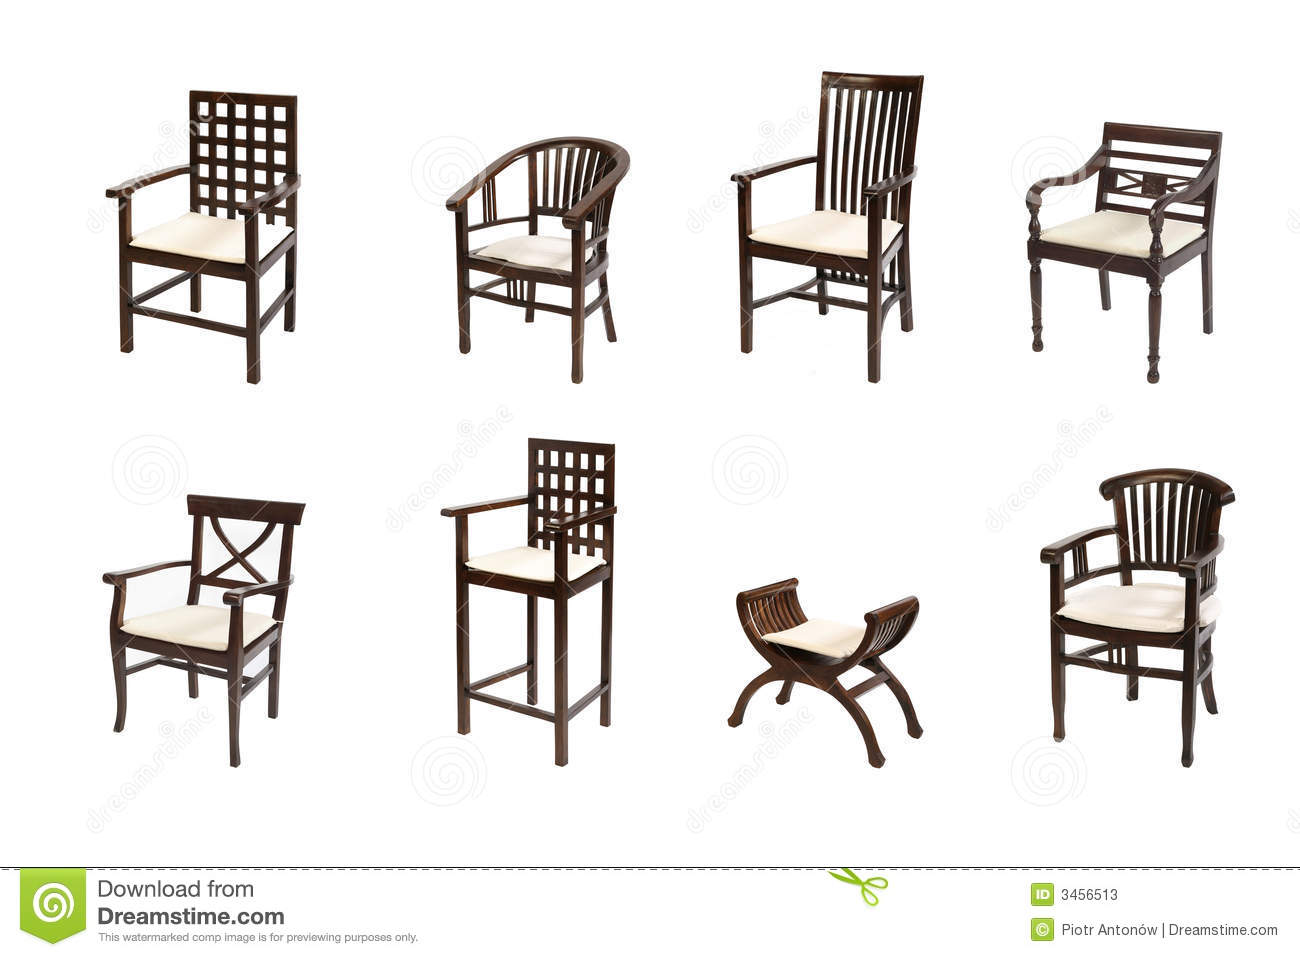 Colonial furniture stock photos image 3456513 - Muebles coloniales ...